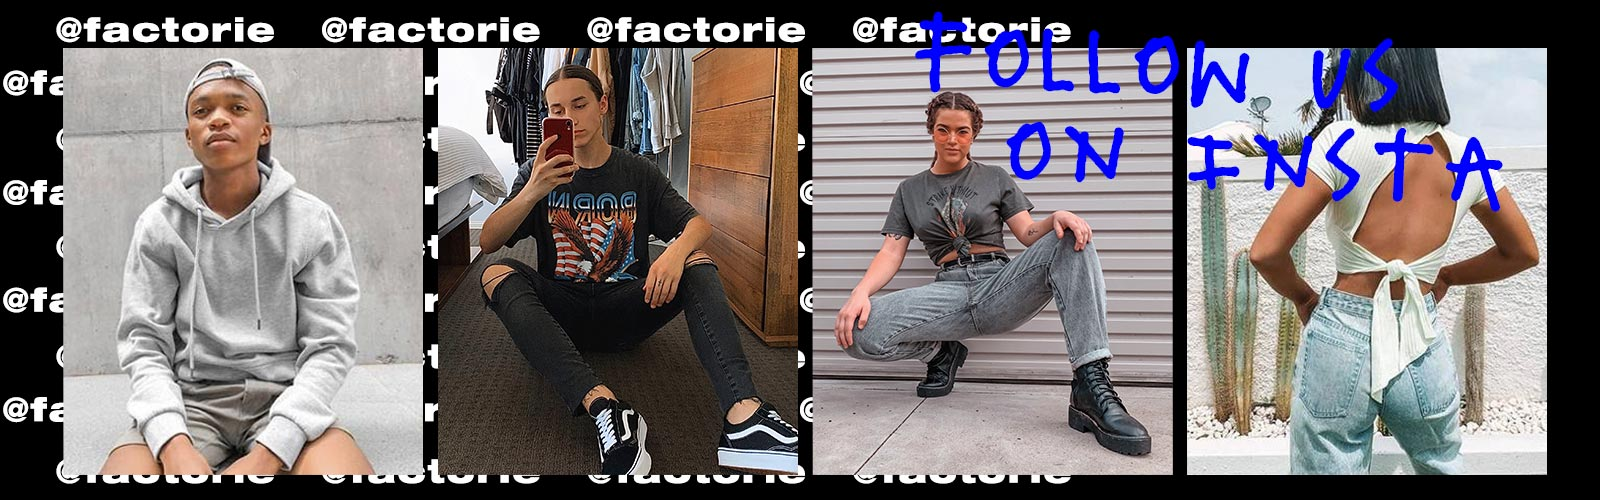 Follow Us @factorie